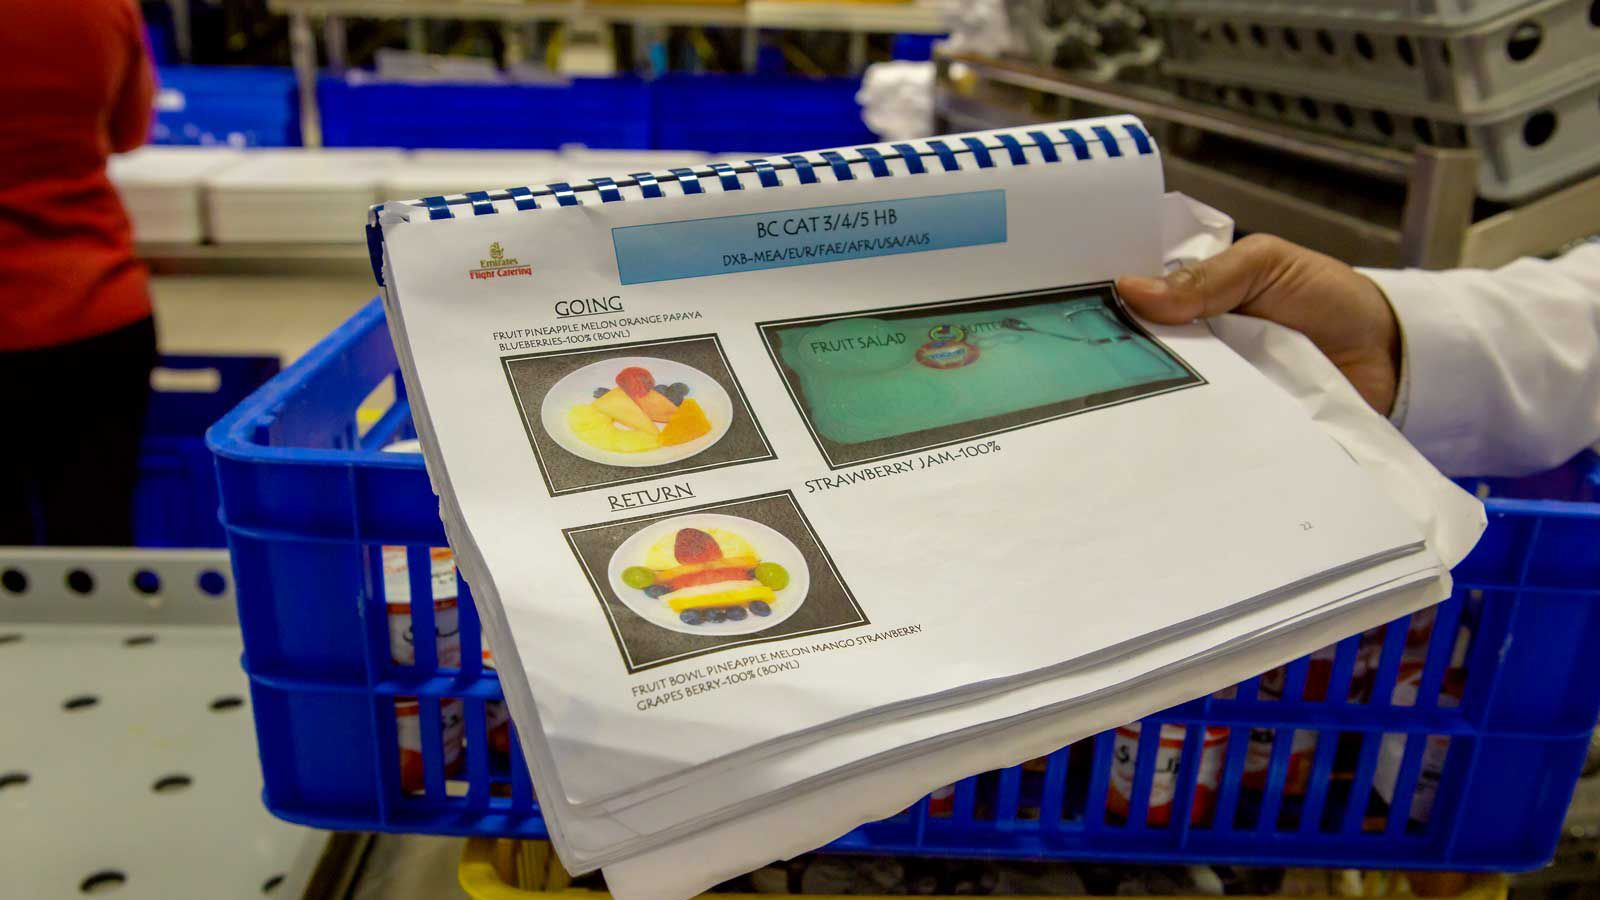 Guidelines show the items and placing of food selections on trays for staff.